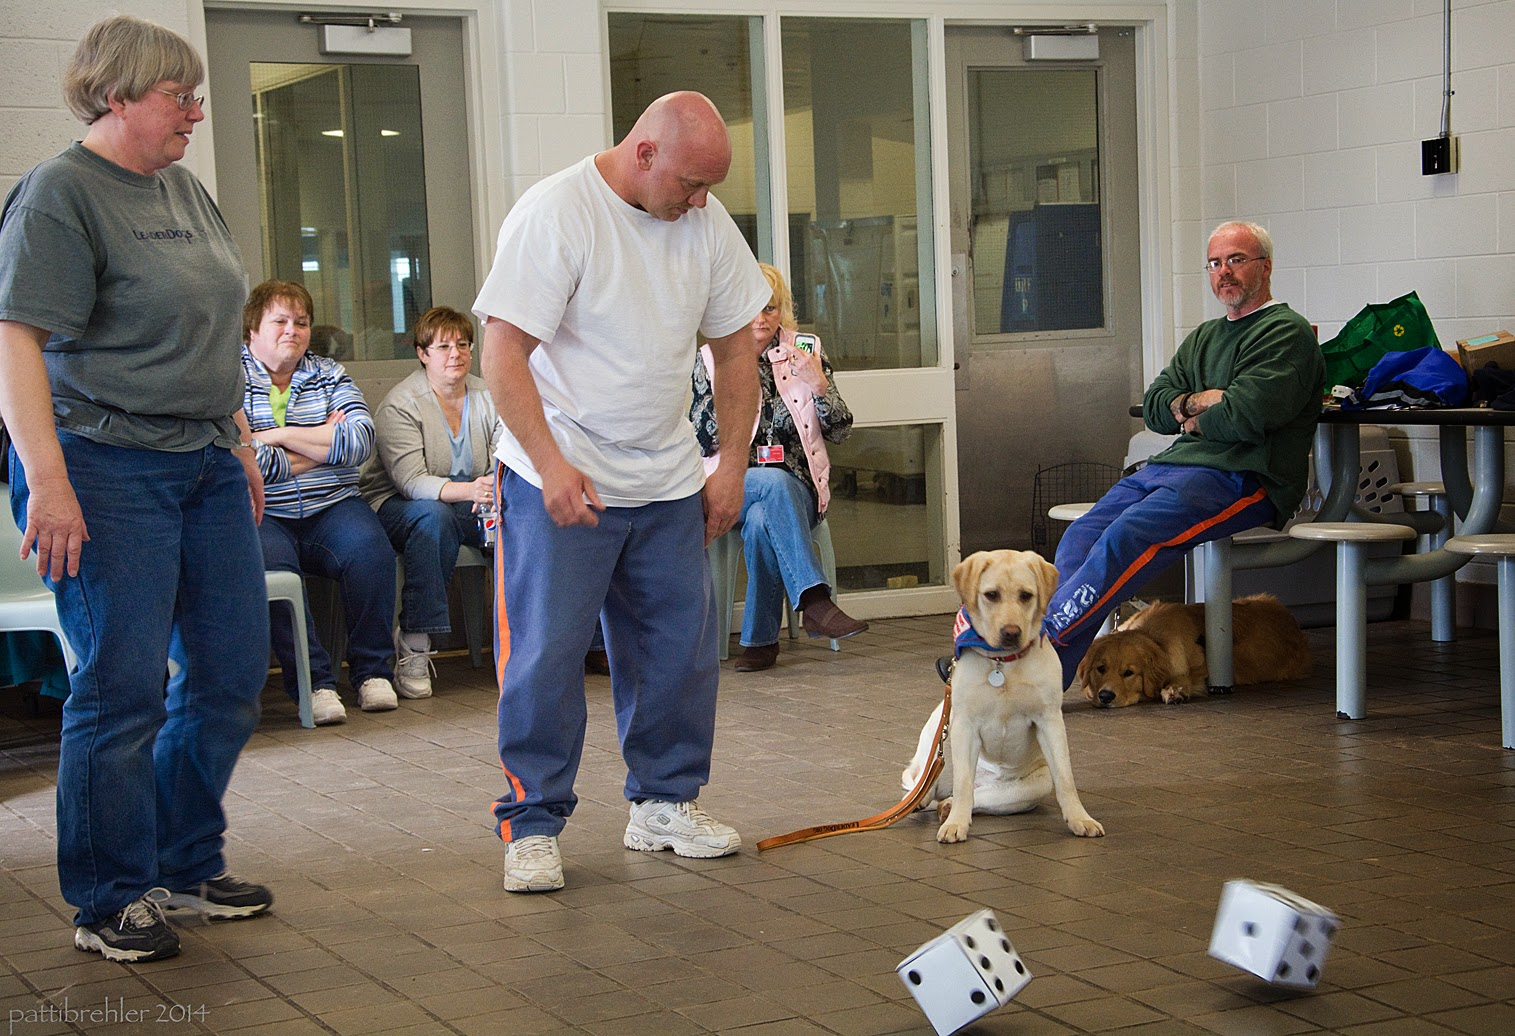 The woman dressed in jeans and a grey t-shirt is standing on the left side of the photo, looking to the right. A man wearing blue prison pants and a white t-shirt and is bald, is standing in the middle of the photo with his arms at his side. He is looking down to the right at a yellow lab that is sitting on a tile floor. The puppy's leash is laying on the floor next to her, attached to her collar. She is wearing a blue bandana. There are two large six inch dice about to come to rest on the floor in the foreground. The man with blue priosn pants and a green sweat shirt is sitting on the right side with his arms crossed on his chets. Ther eare three women sitting on chairs behind the others.